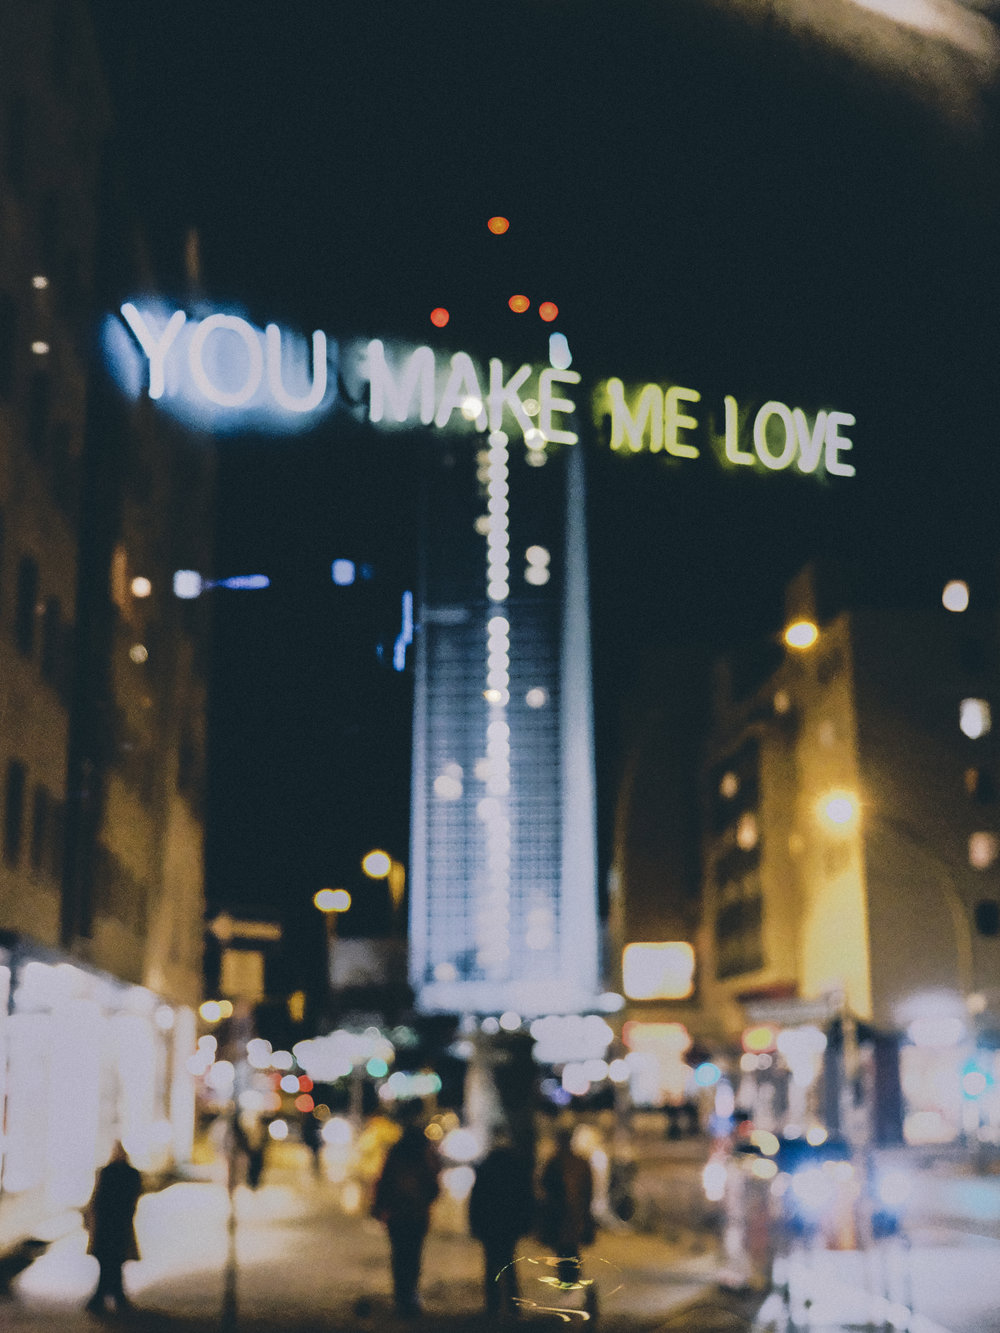 berlin-oliv-you-make-me-love-neon